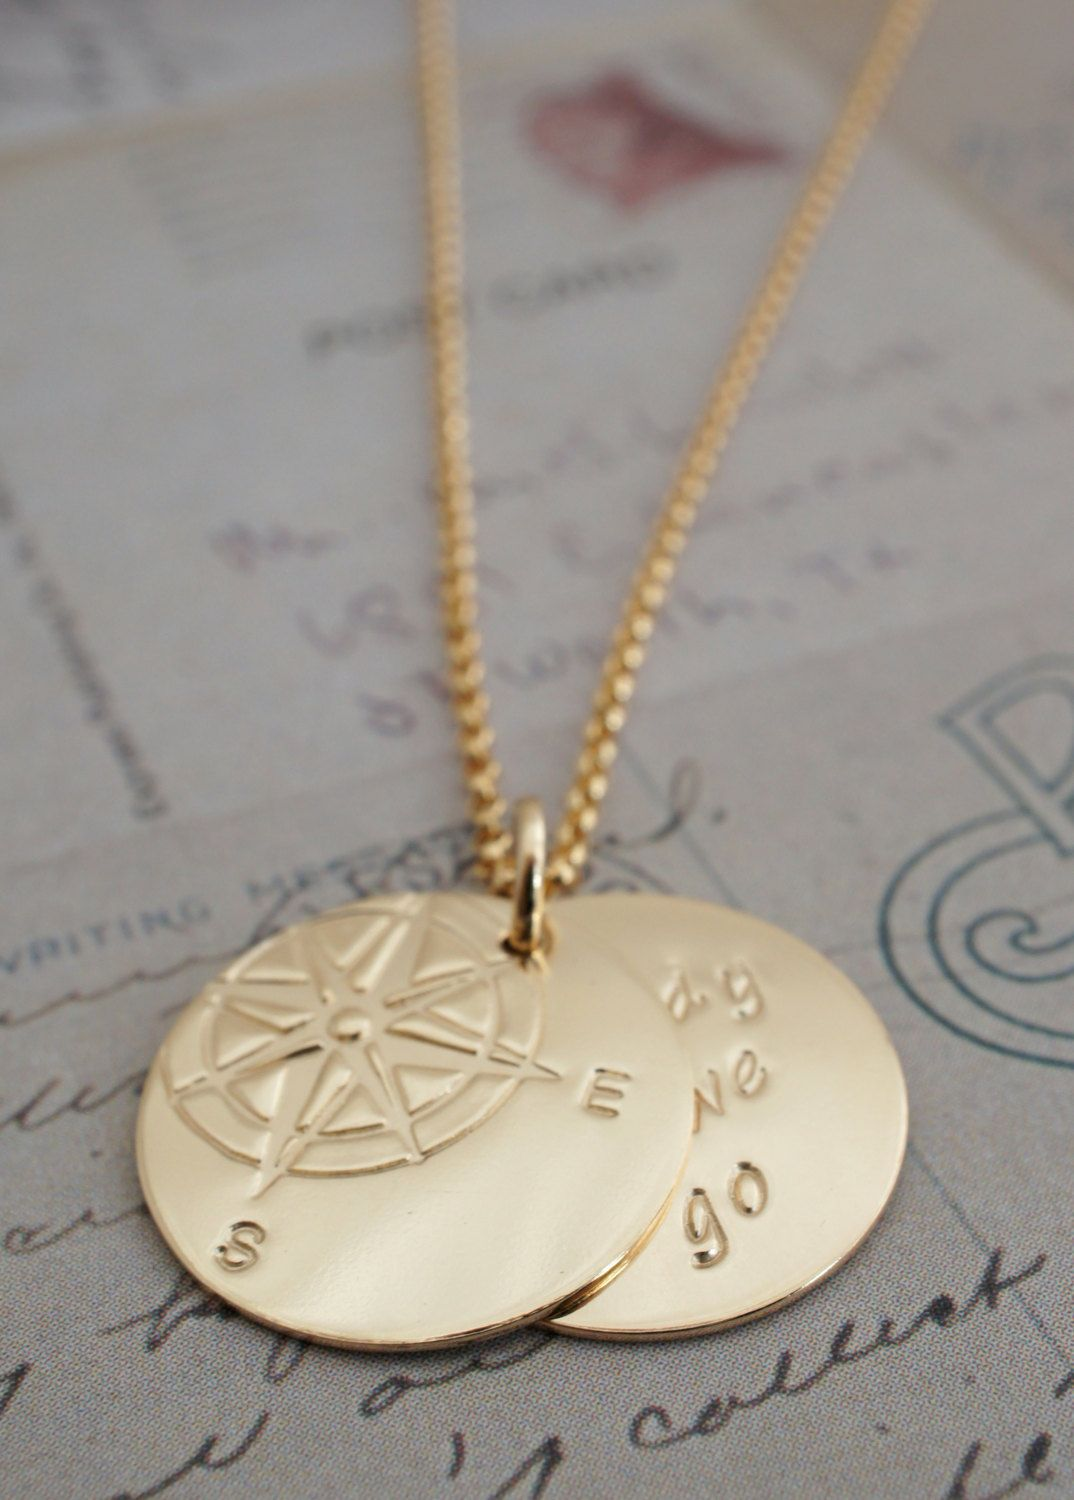 31a36fb1e Gold Filled Compass Jewelry - Compass Rose Necklace w/ Hidden Message -  Personalized Inspirational Jewelry in 14K Yellow GF by EclecticWendyDesigns  on Etsy